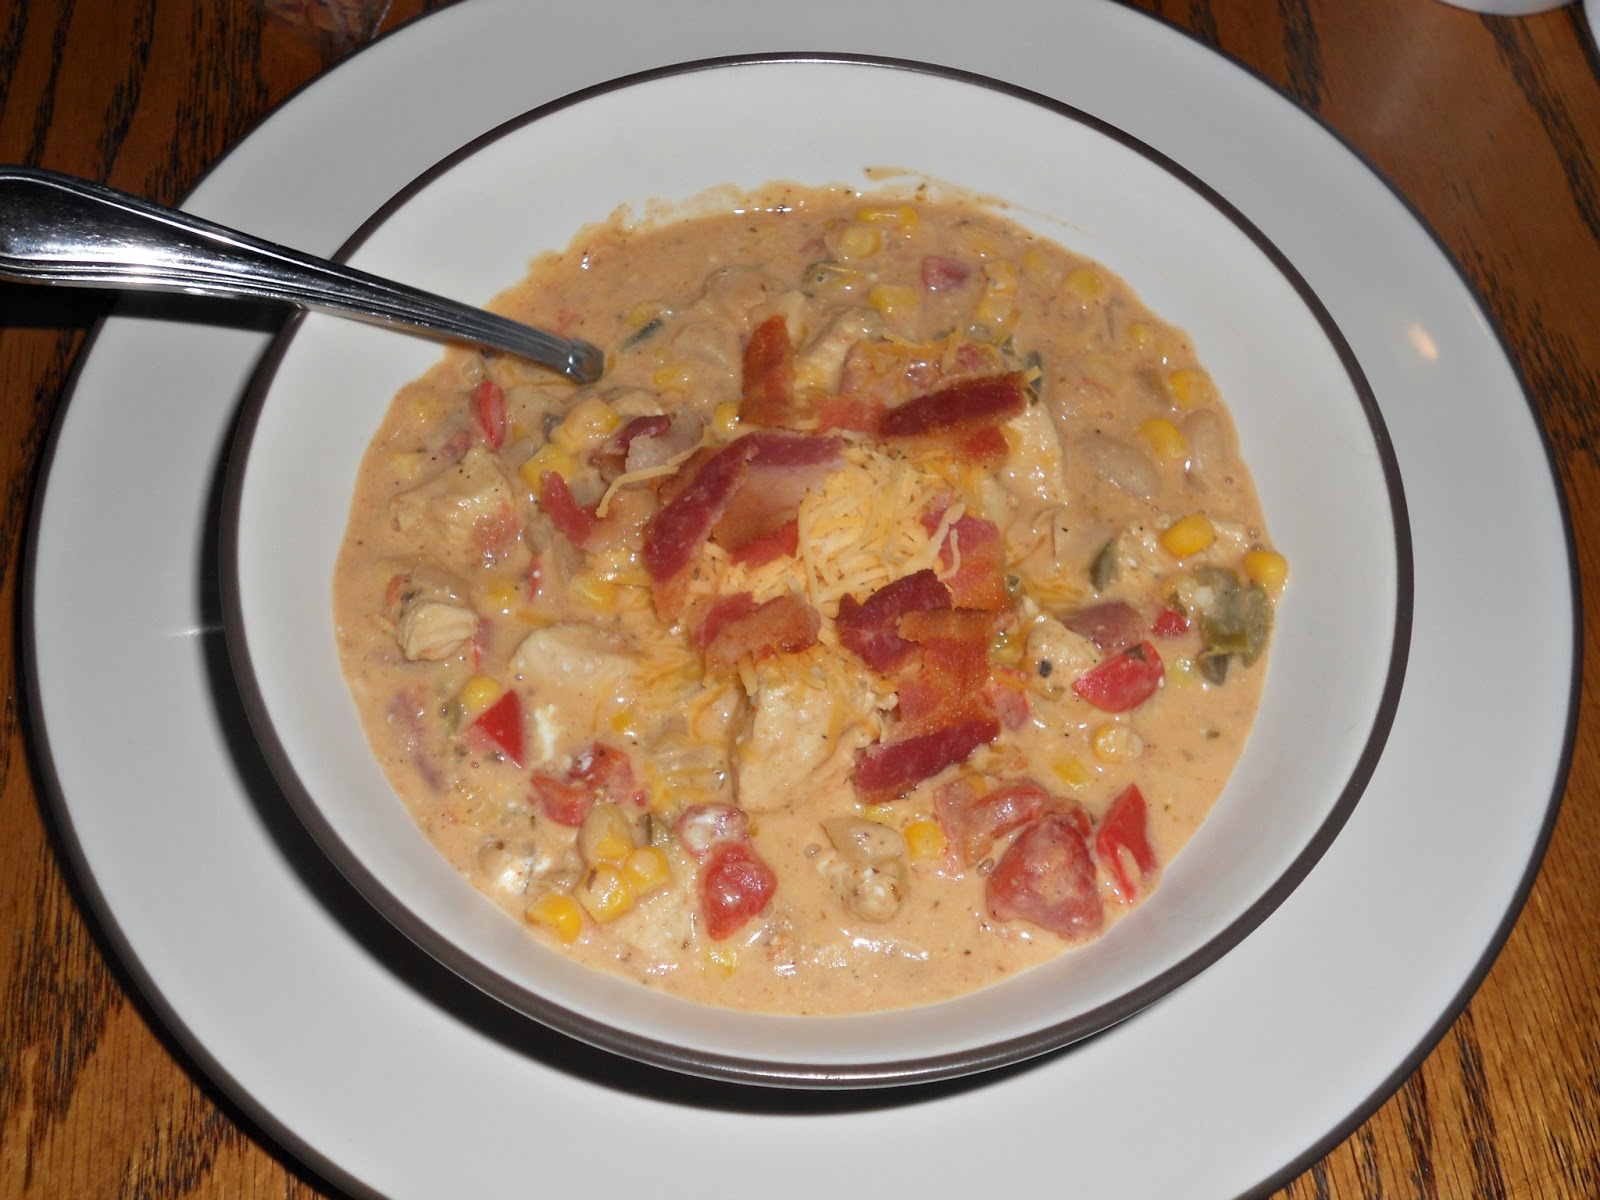 Jalapeno Popper Chicken Chili #SundaySupper - Hezzi-D's Books and ...